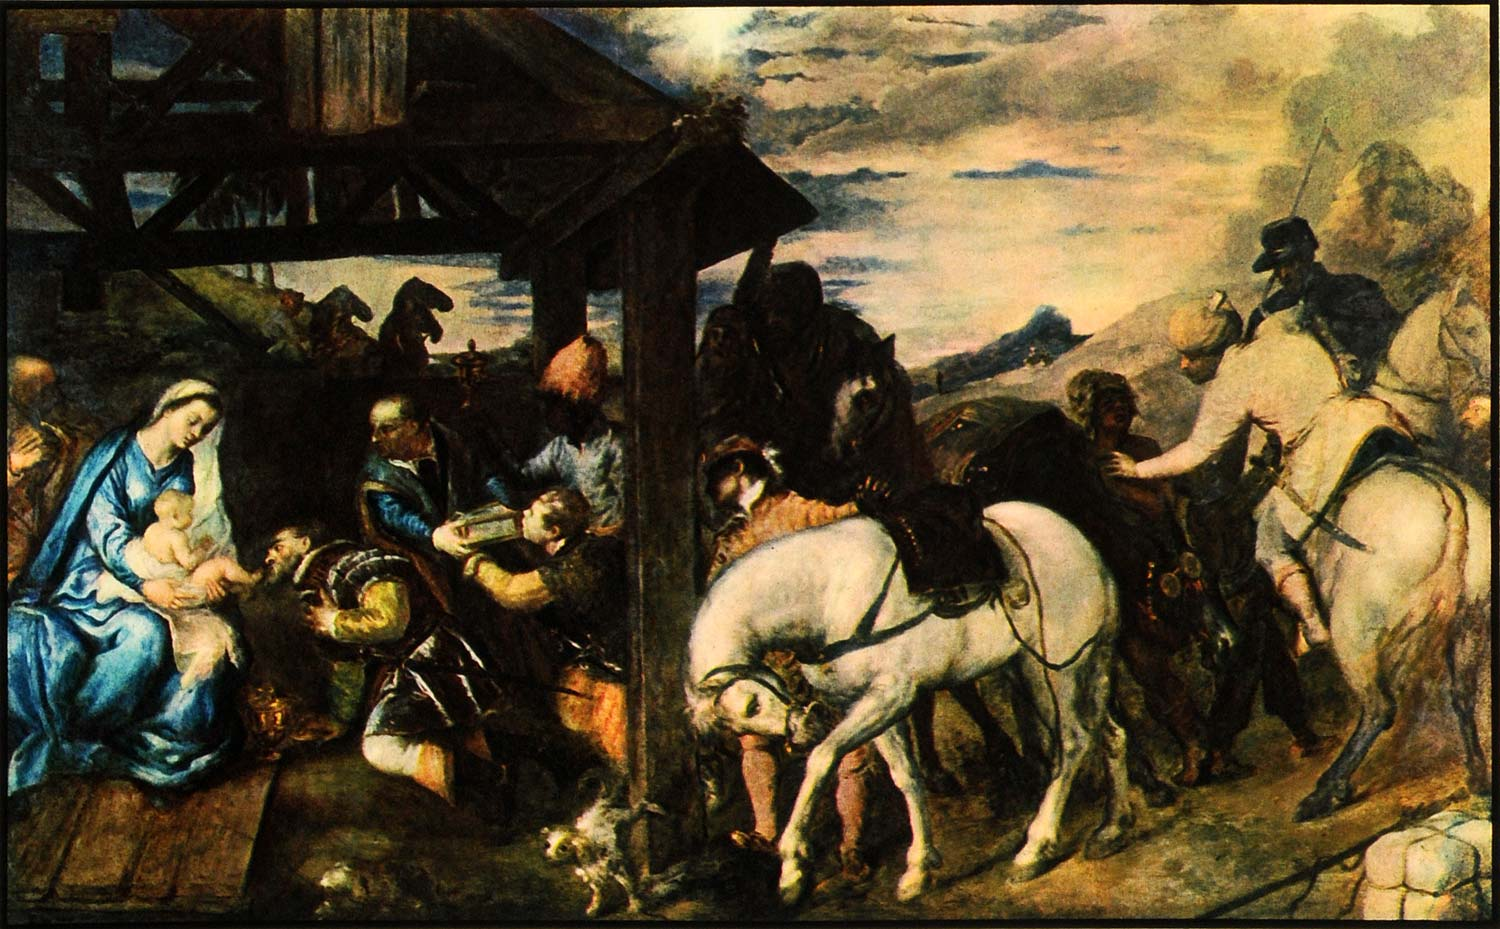 1936 Print Adoration Magi Titian Horse Mary Virgin Art Christ Jesus Stable FZ2